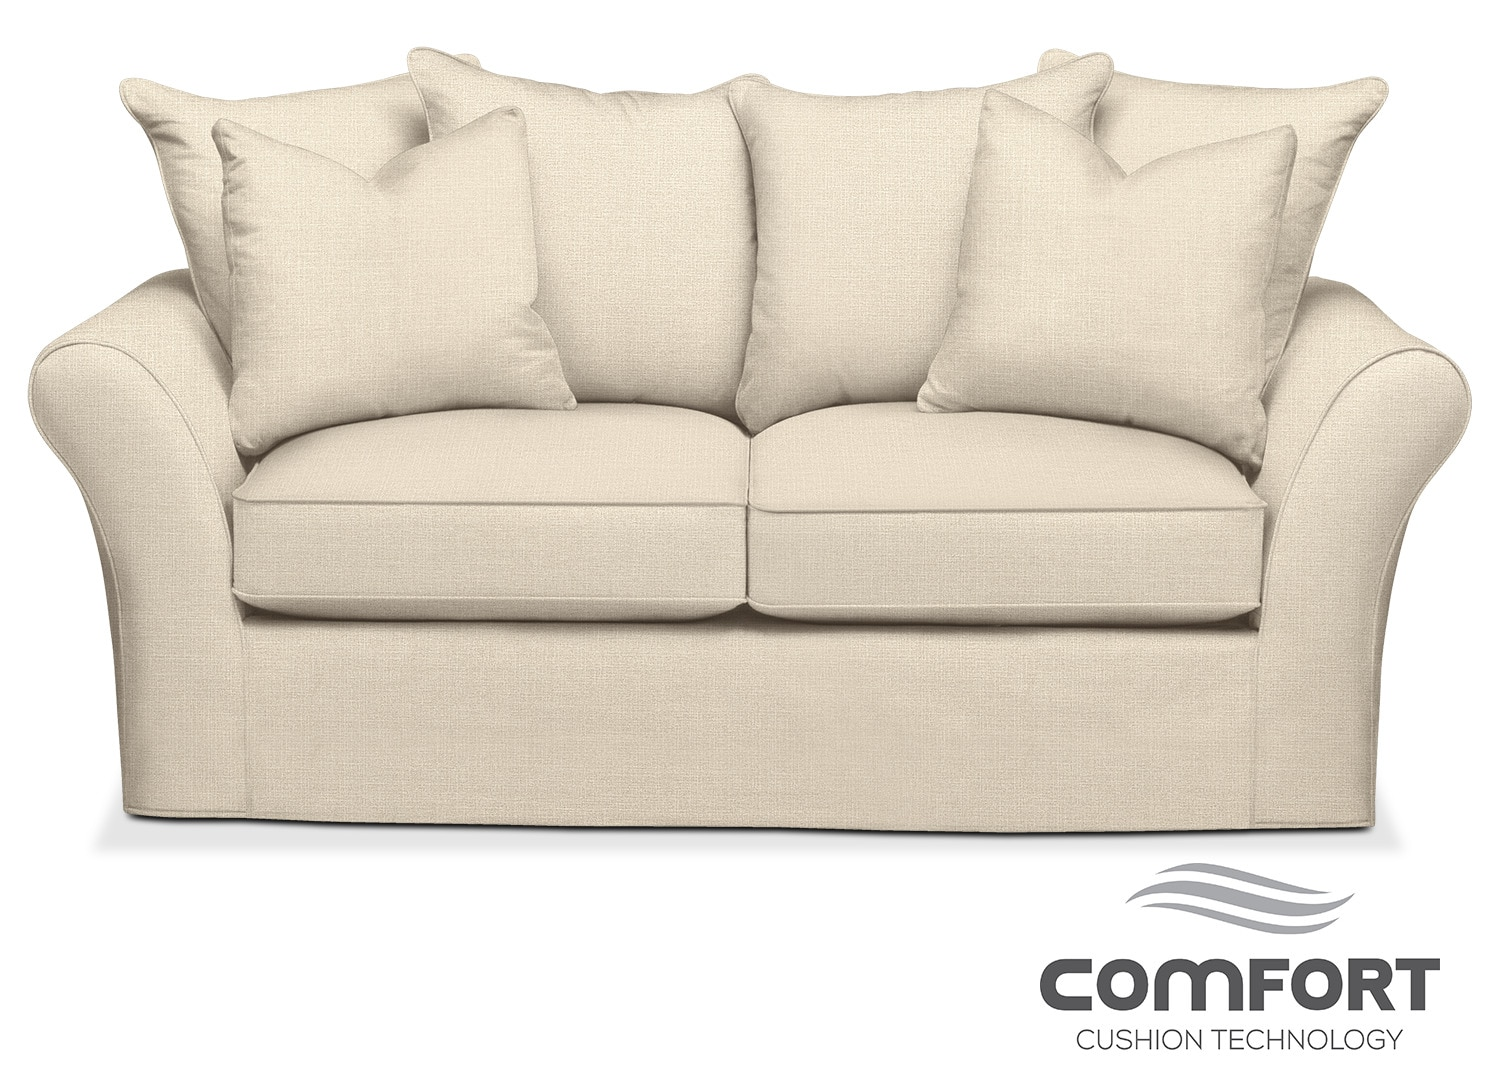 Allison Comfort Apartment Sofa